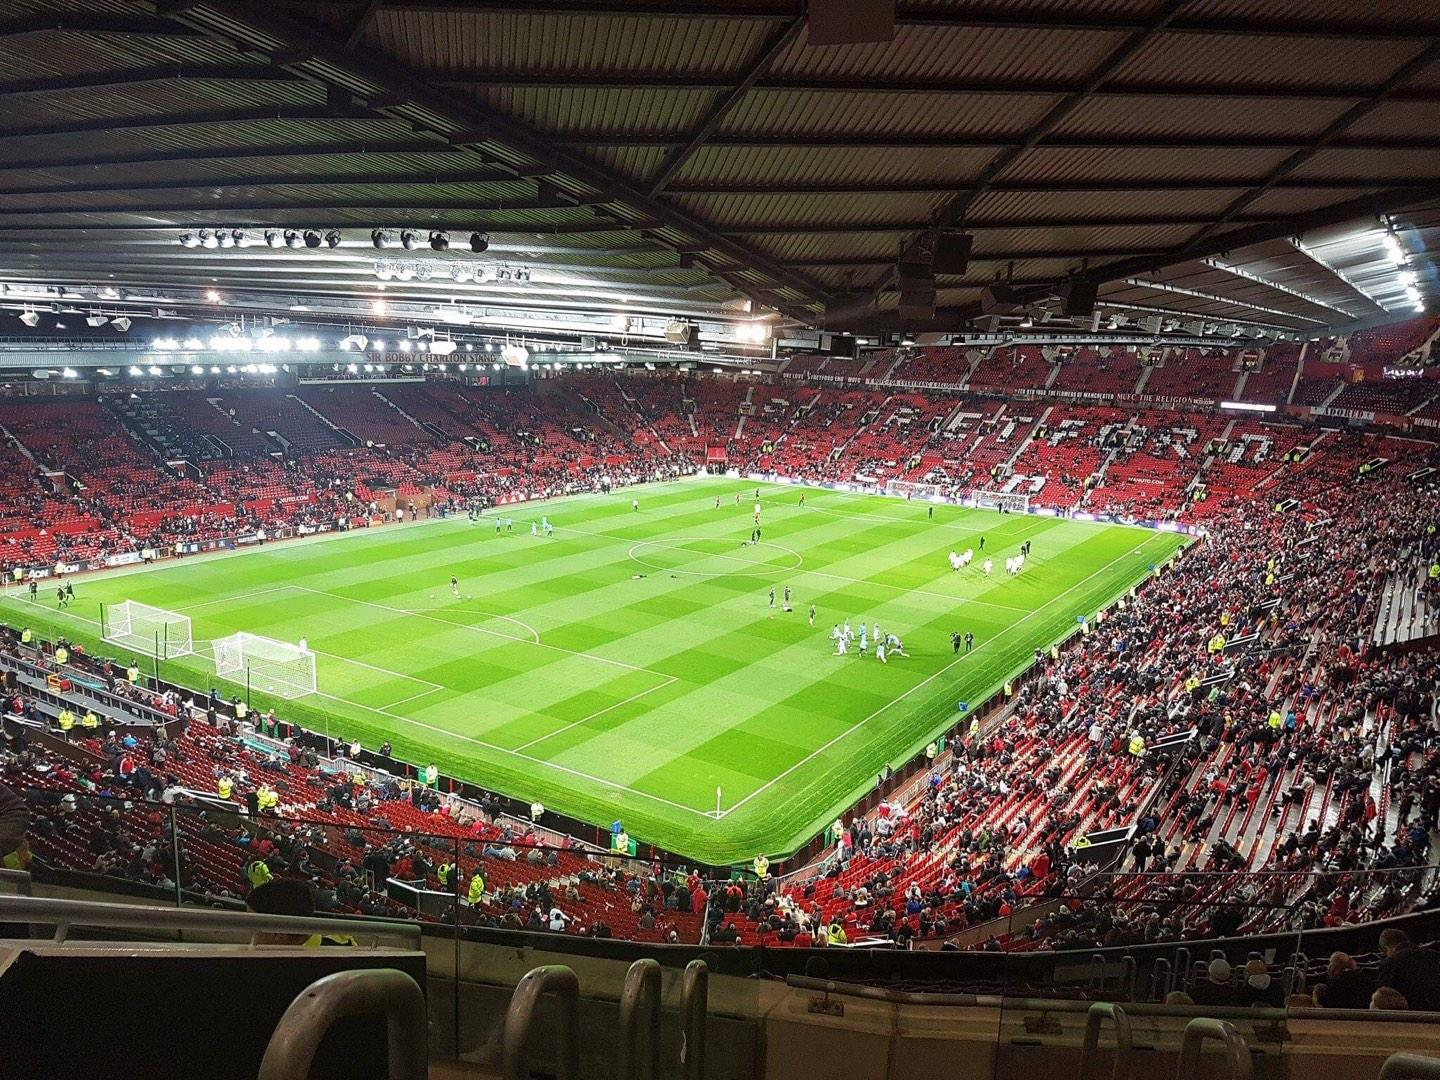 Old Trafford Section NE3425 Row 22 Seat 114